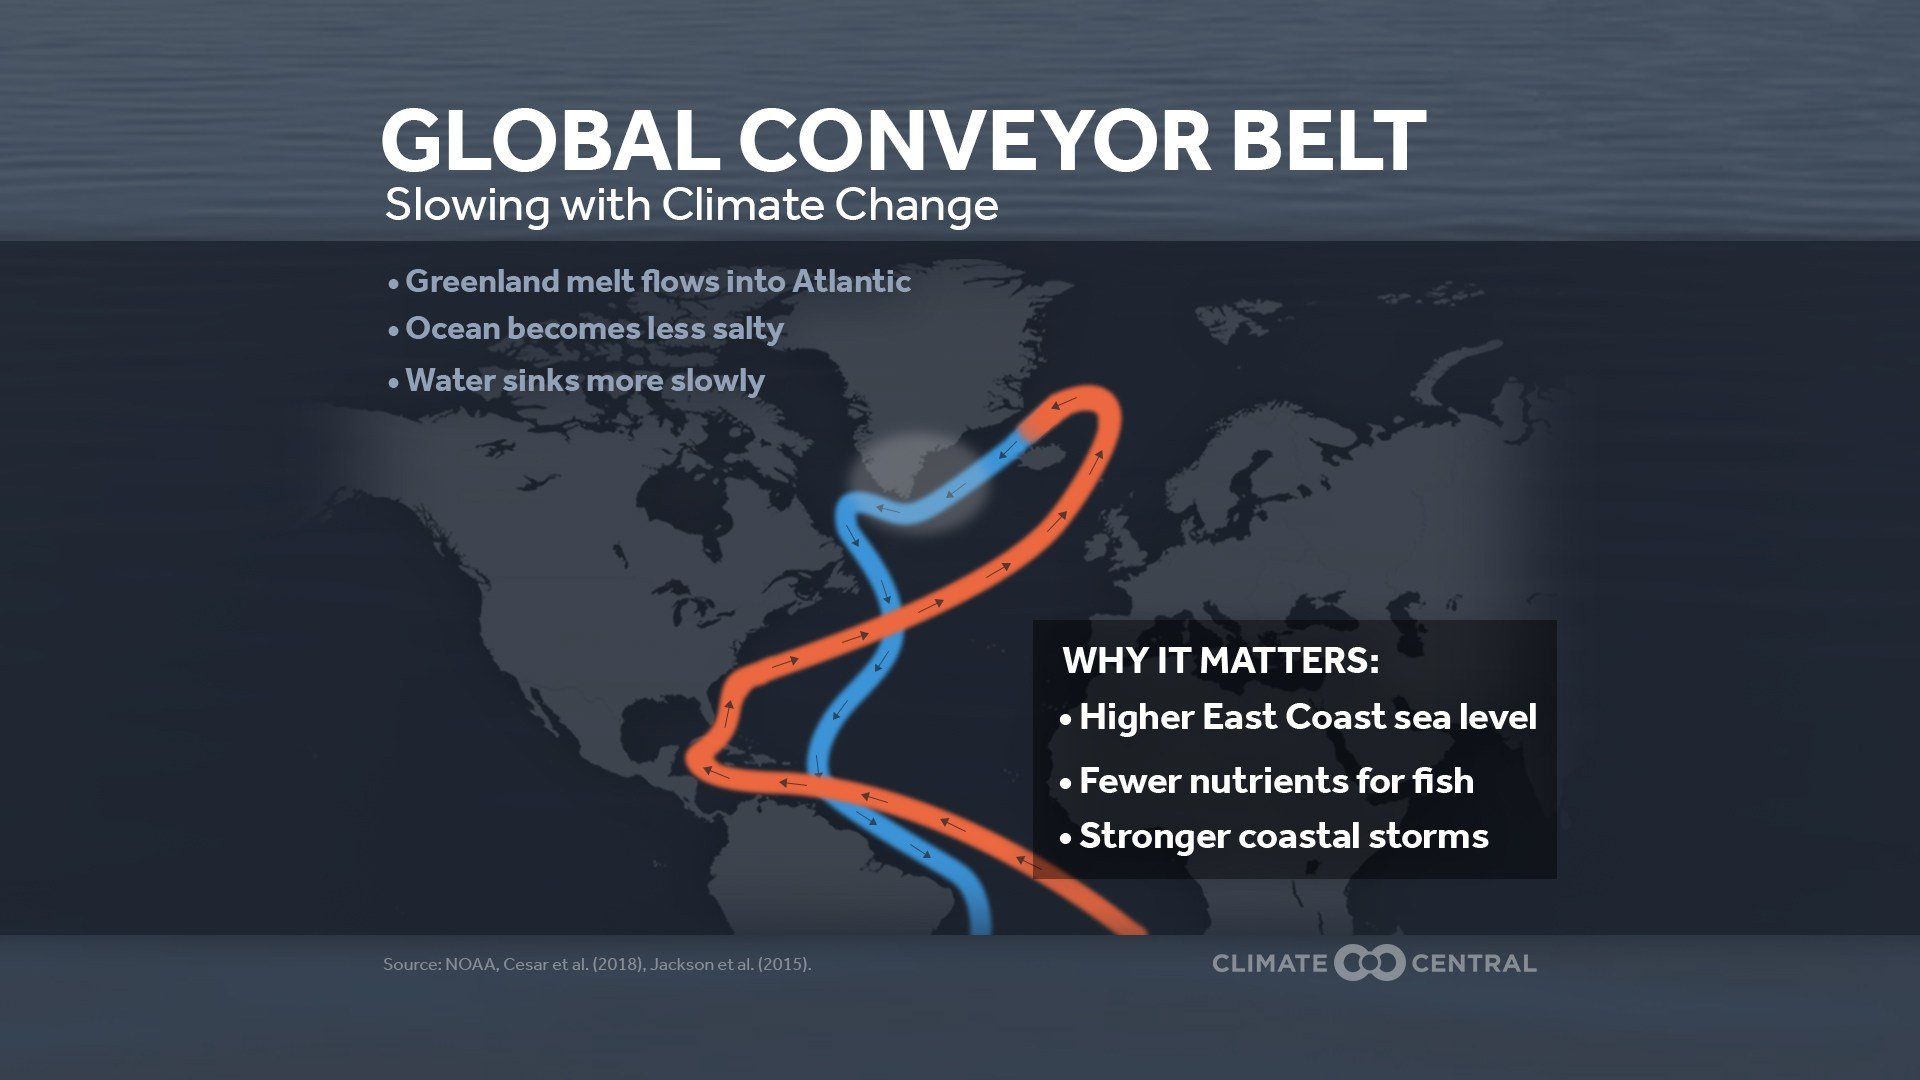 Melting ice from Greenland is slowing the global ocean conveyor belt, which can impact climate, sea level rise, and ocean life (Climate Central)